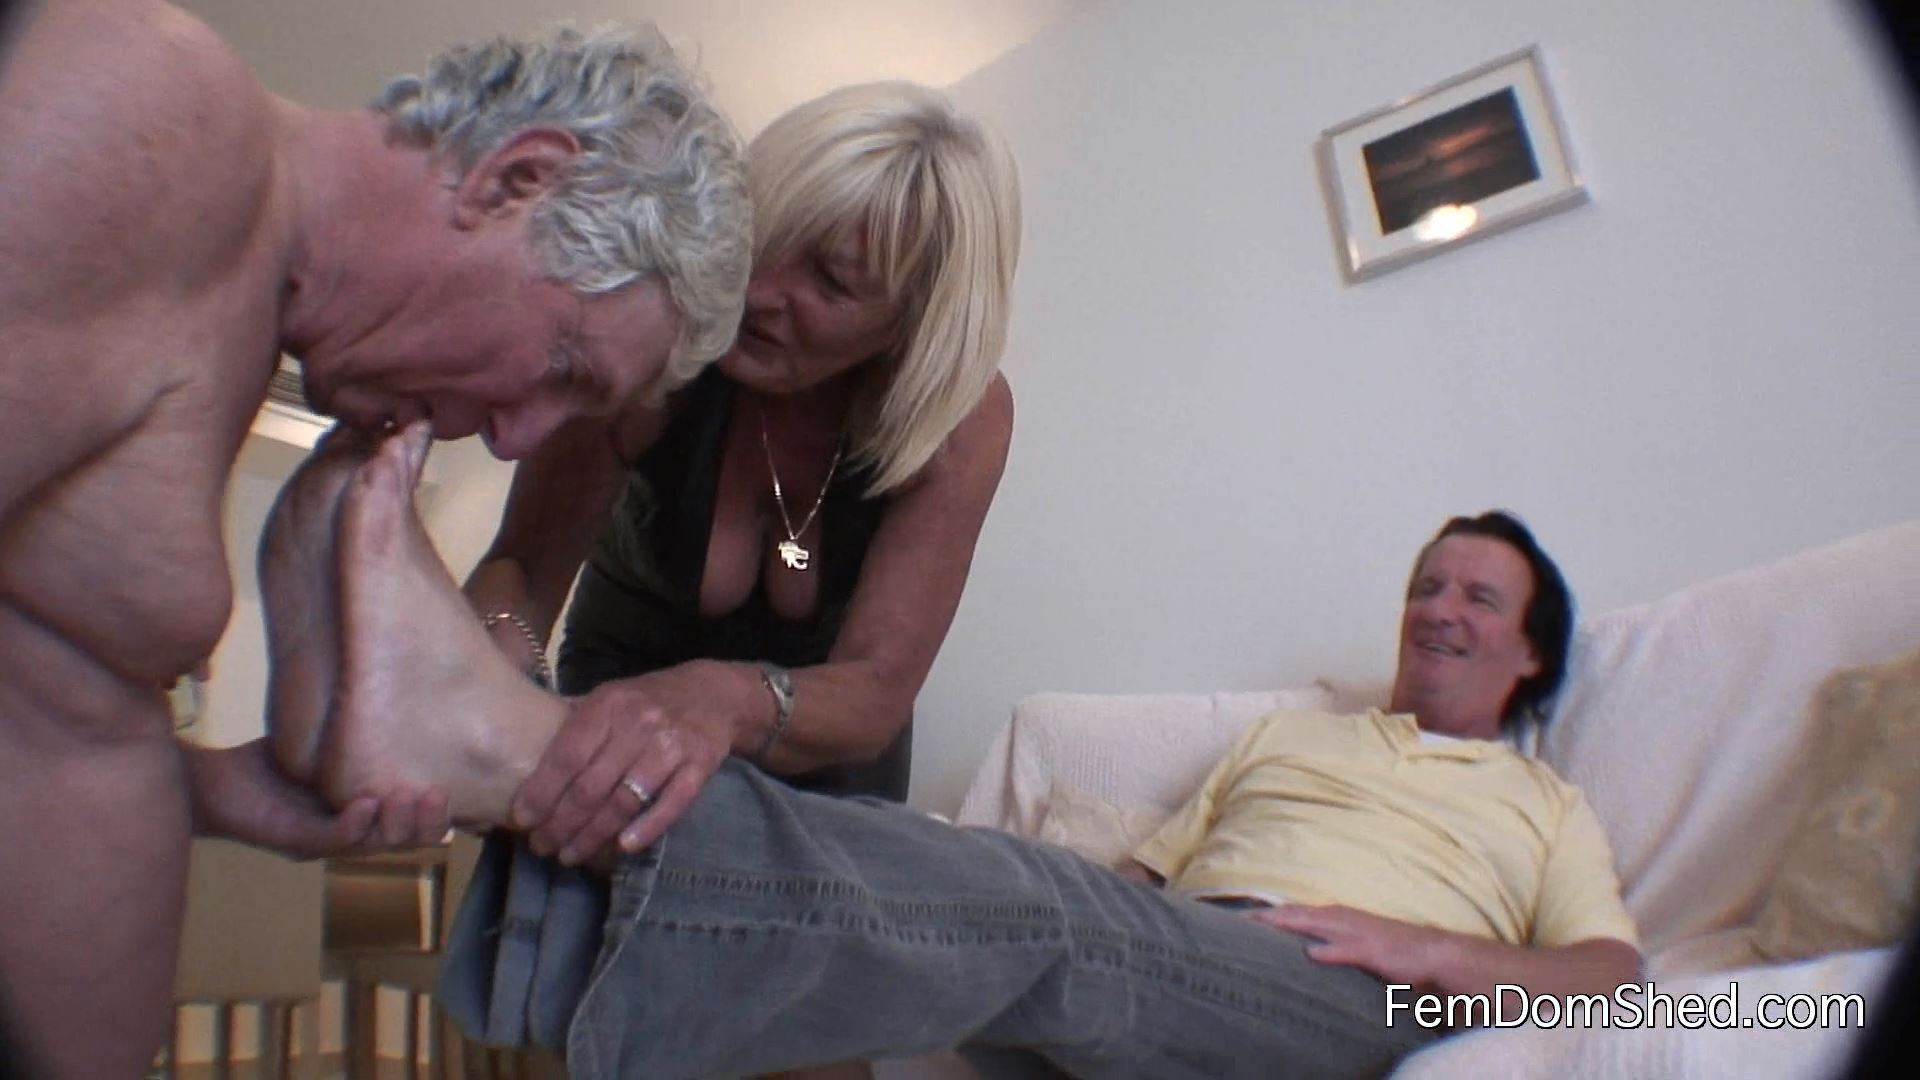 Cuckoldress Diane - Suck On My Lovers Stinky Socked Feet While I Watch - FEMDOMSHED - FULL HD/1080p/MP4